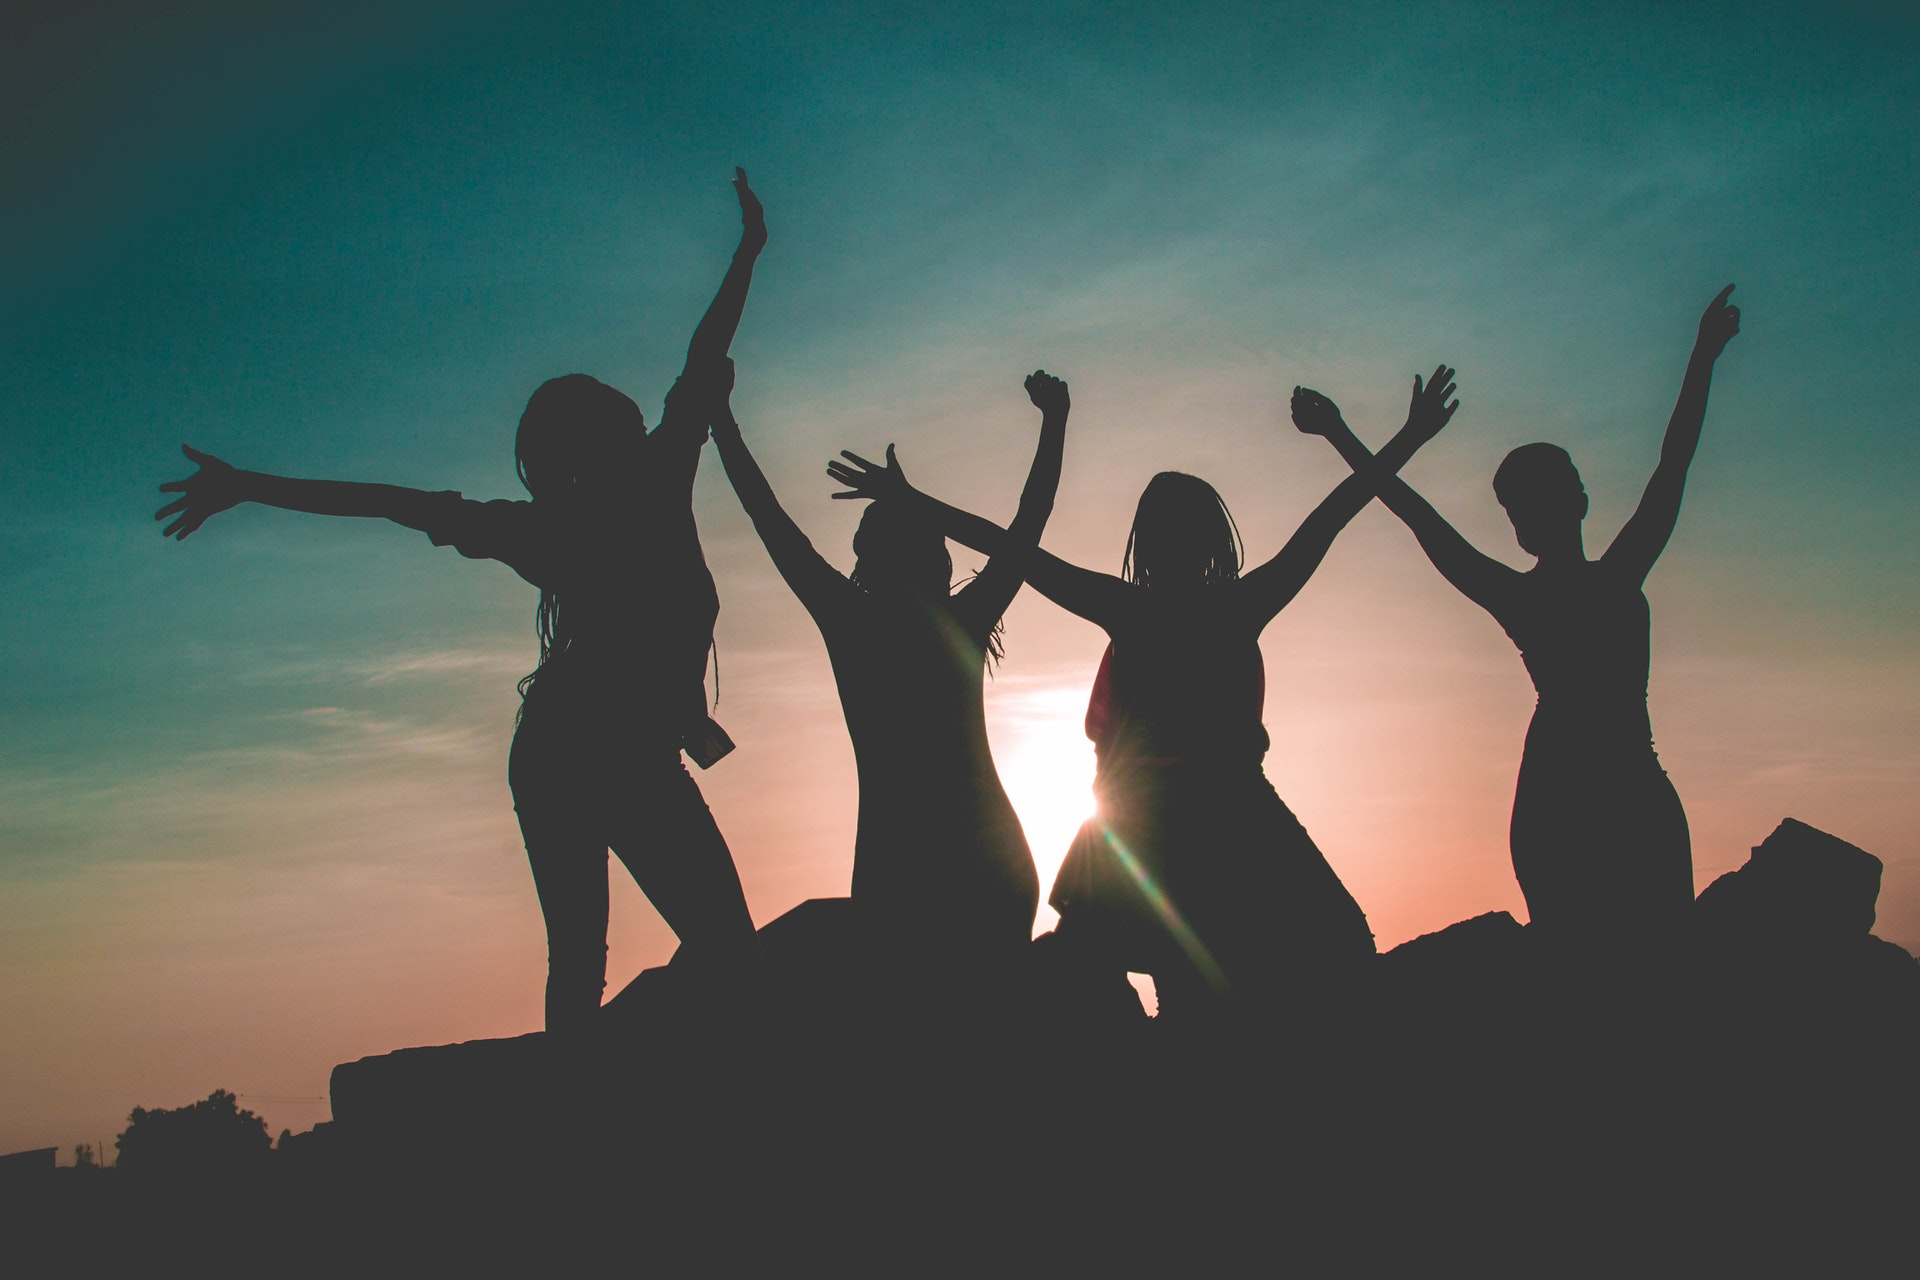 silhouette-of-four-people-against-sun-background-862848